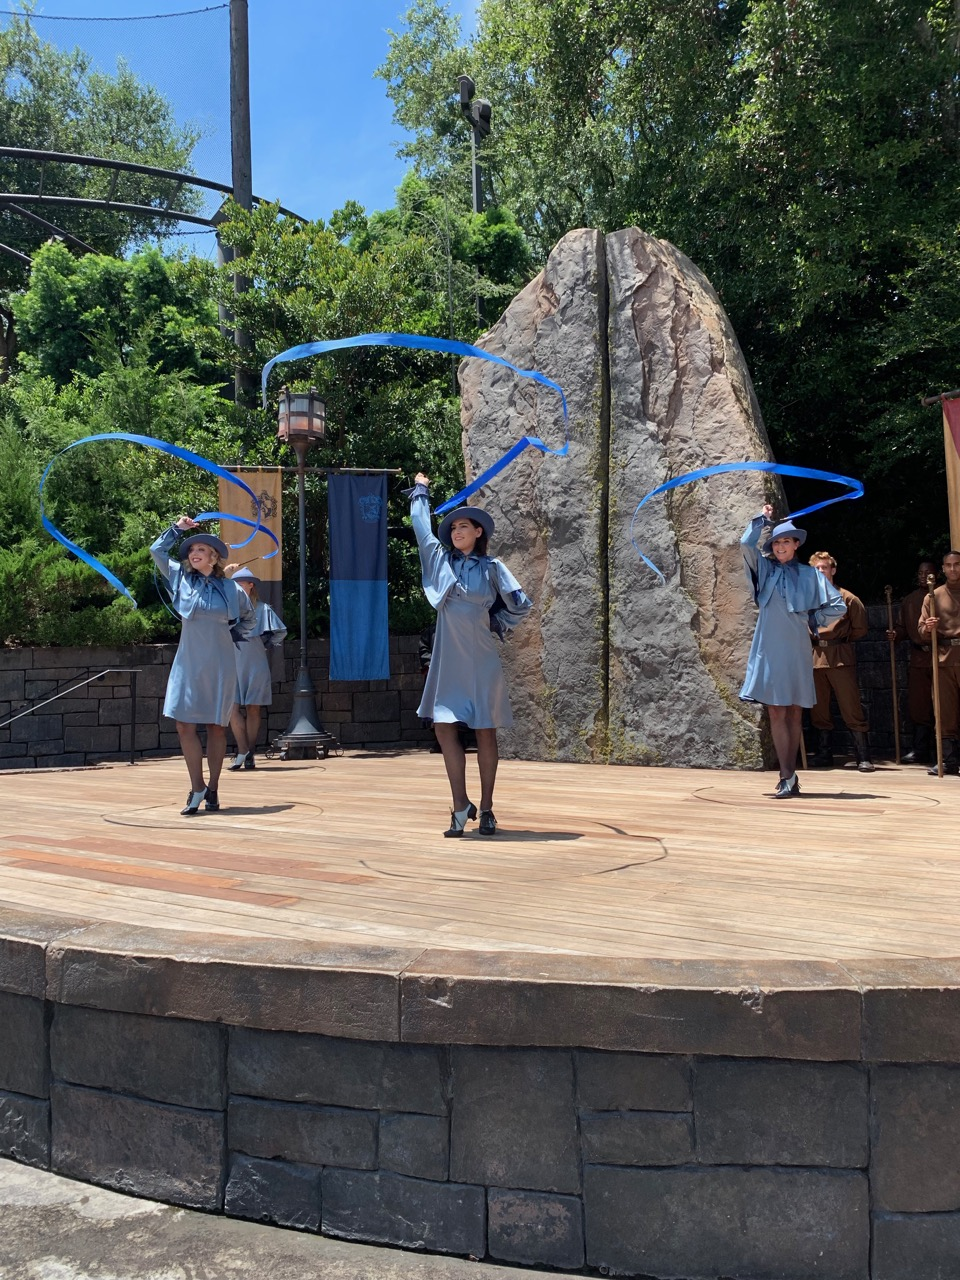 universal orlando summer 2019 trip report part 5 triwizard.jpeg